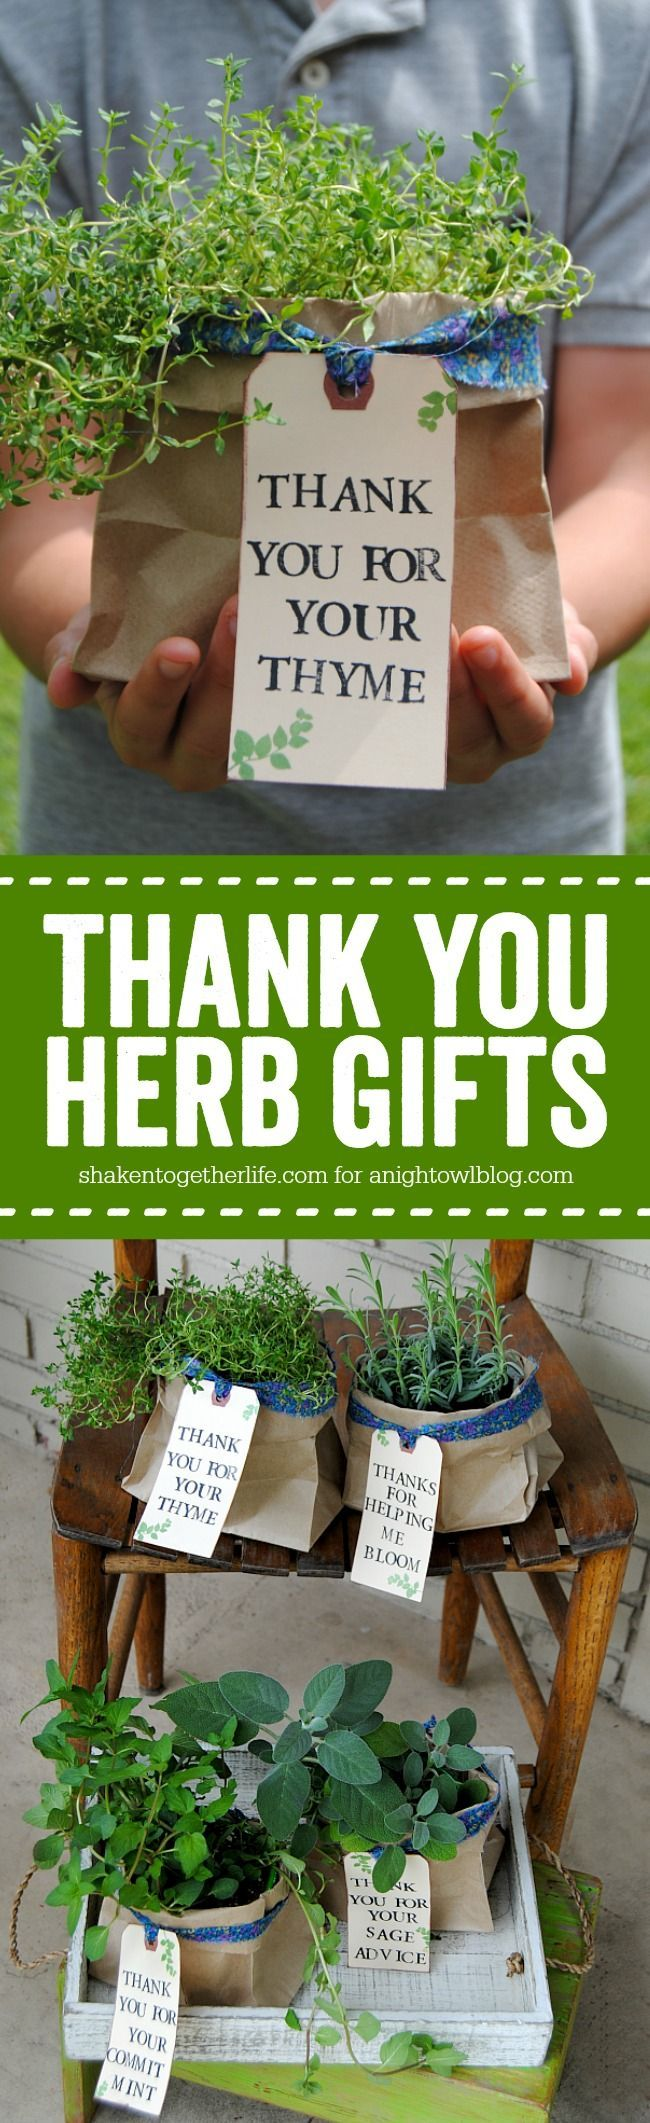 Thoughtful stamped tags & pretty fabric ties dress up plain potted herbs for Thank You Herb Gifts! Perfect for sustainable mission based orgs